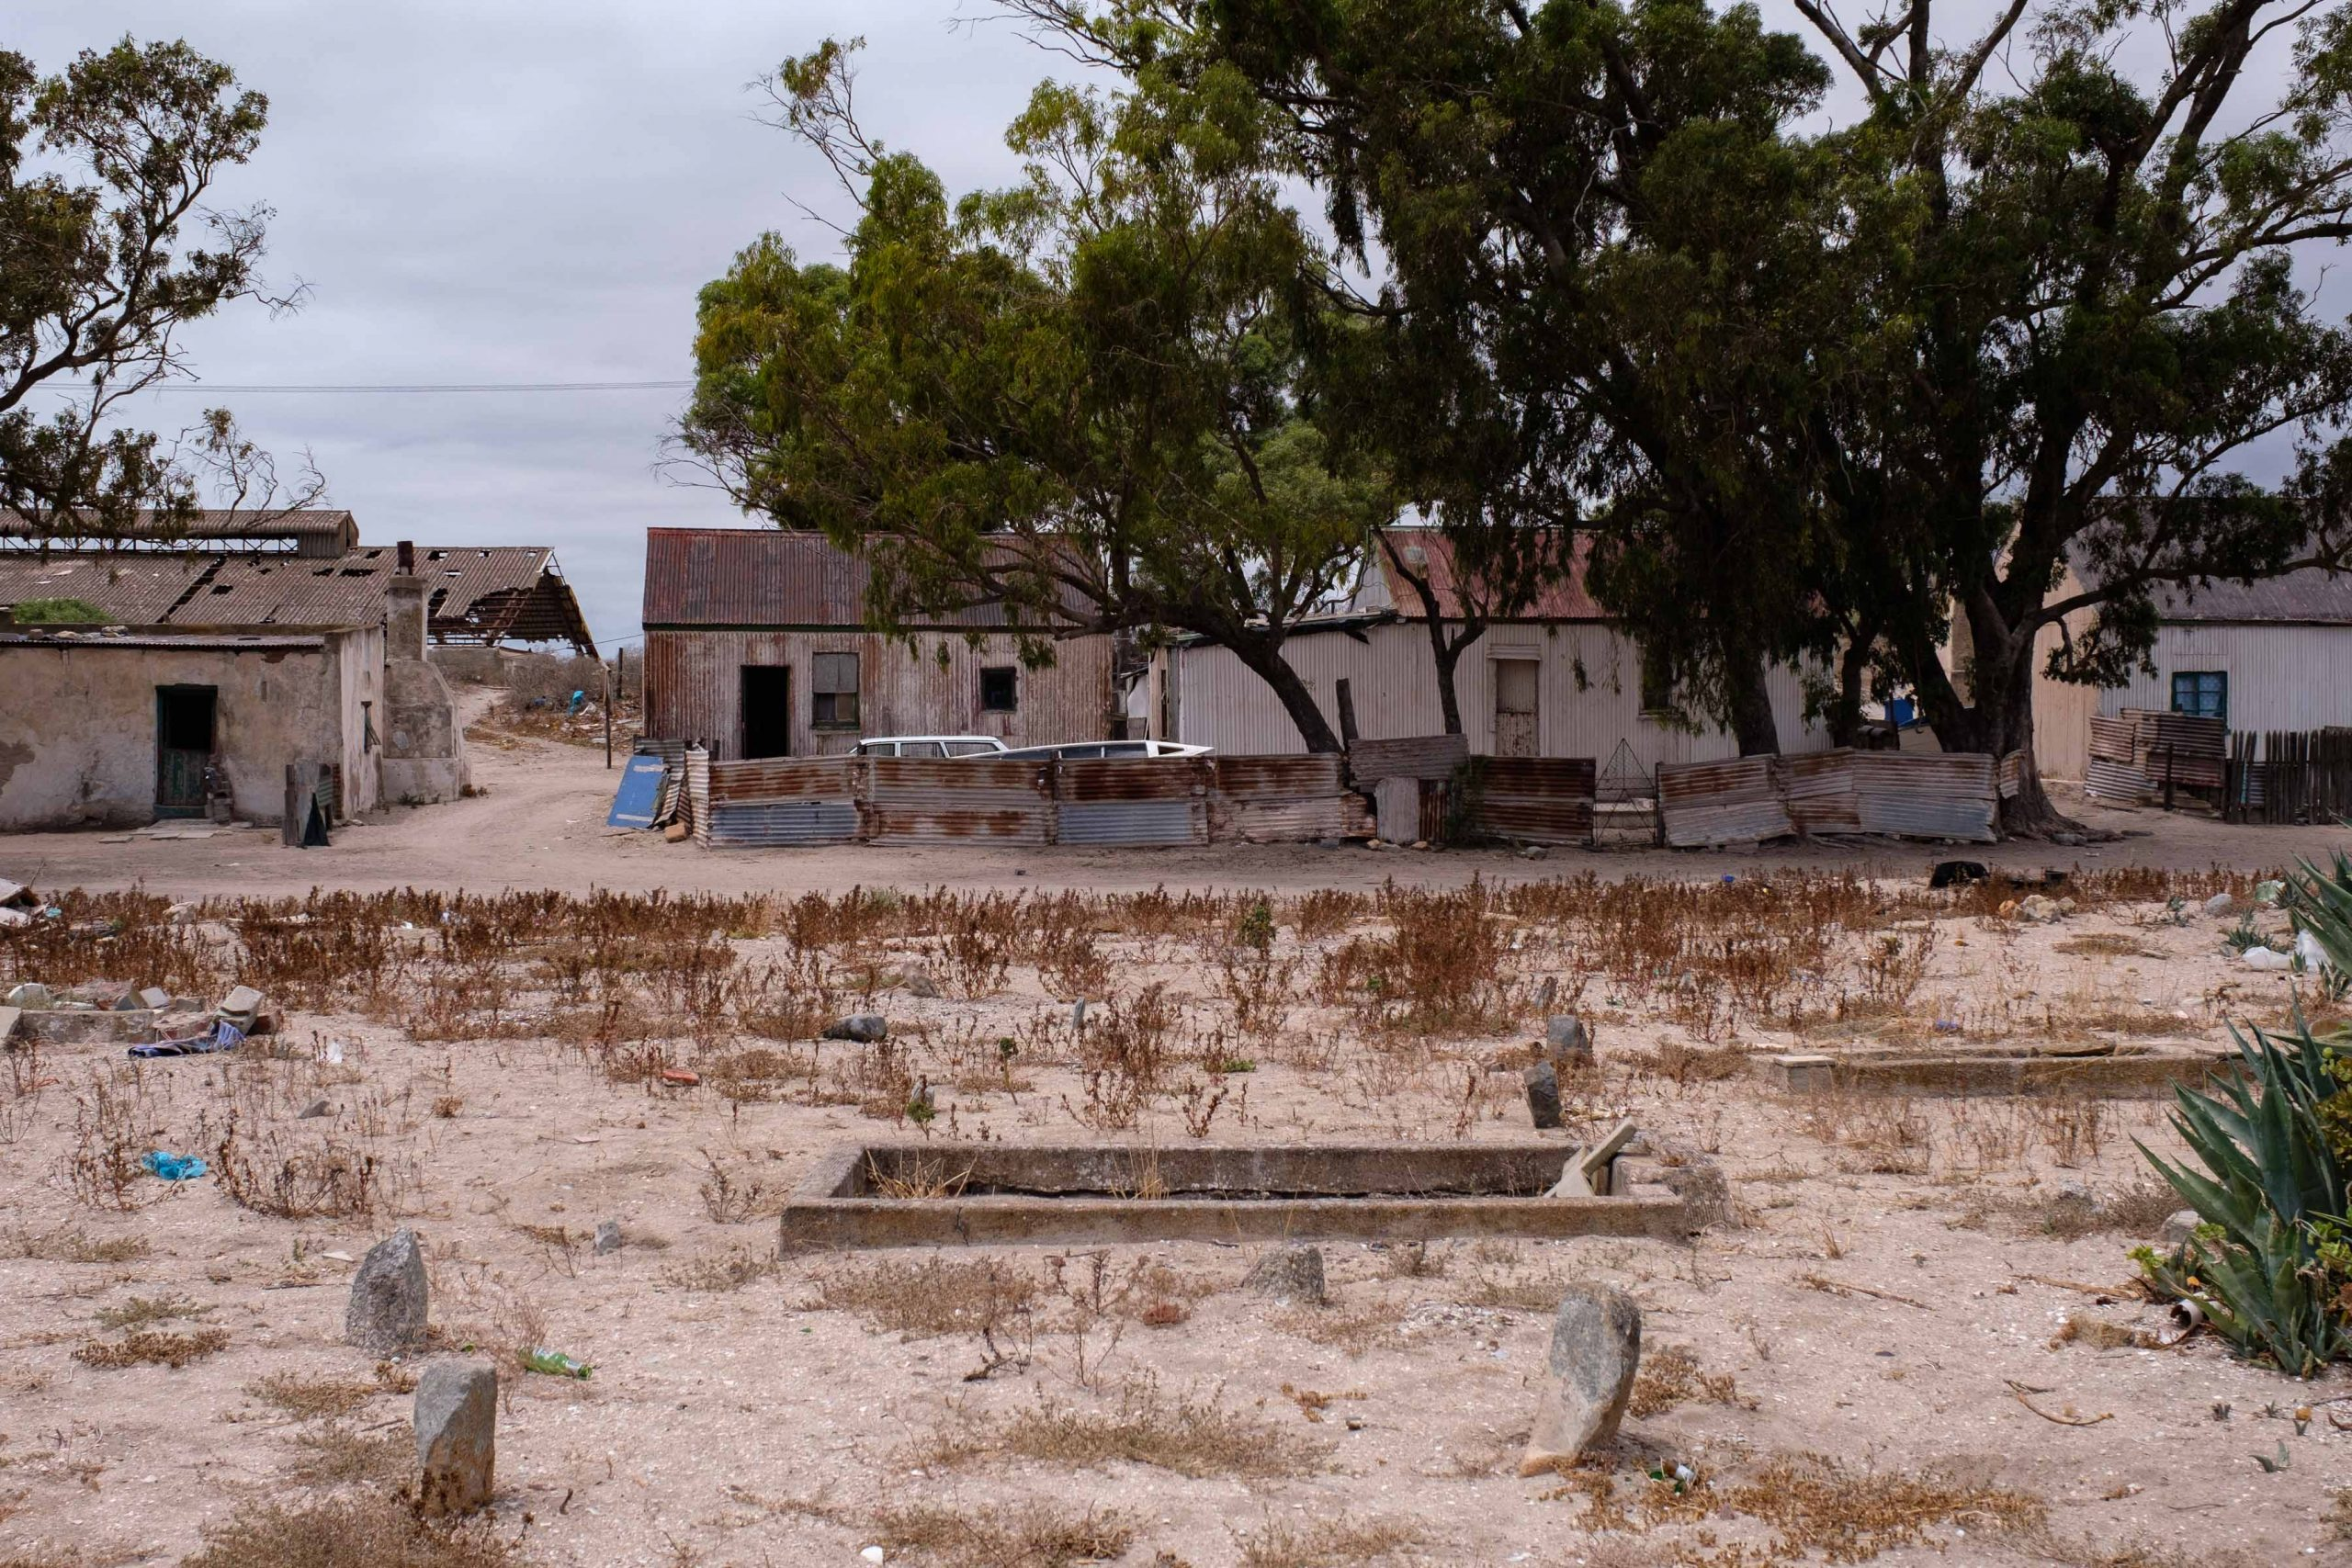 22 January 2020: The ruins of the old fish-canning factory can be seen from the old cemetery. Property developer West Coast Miracles has threatened the people living in the homes in the foreground with relocation.